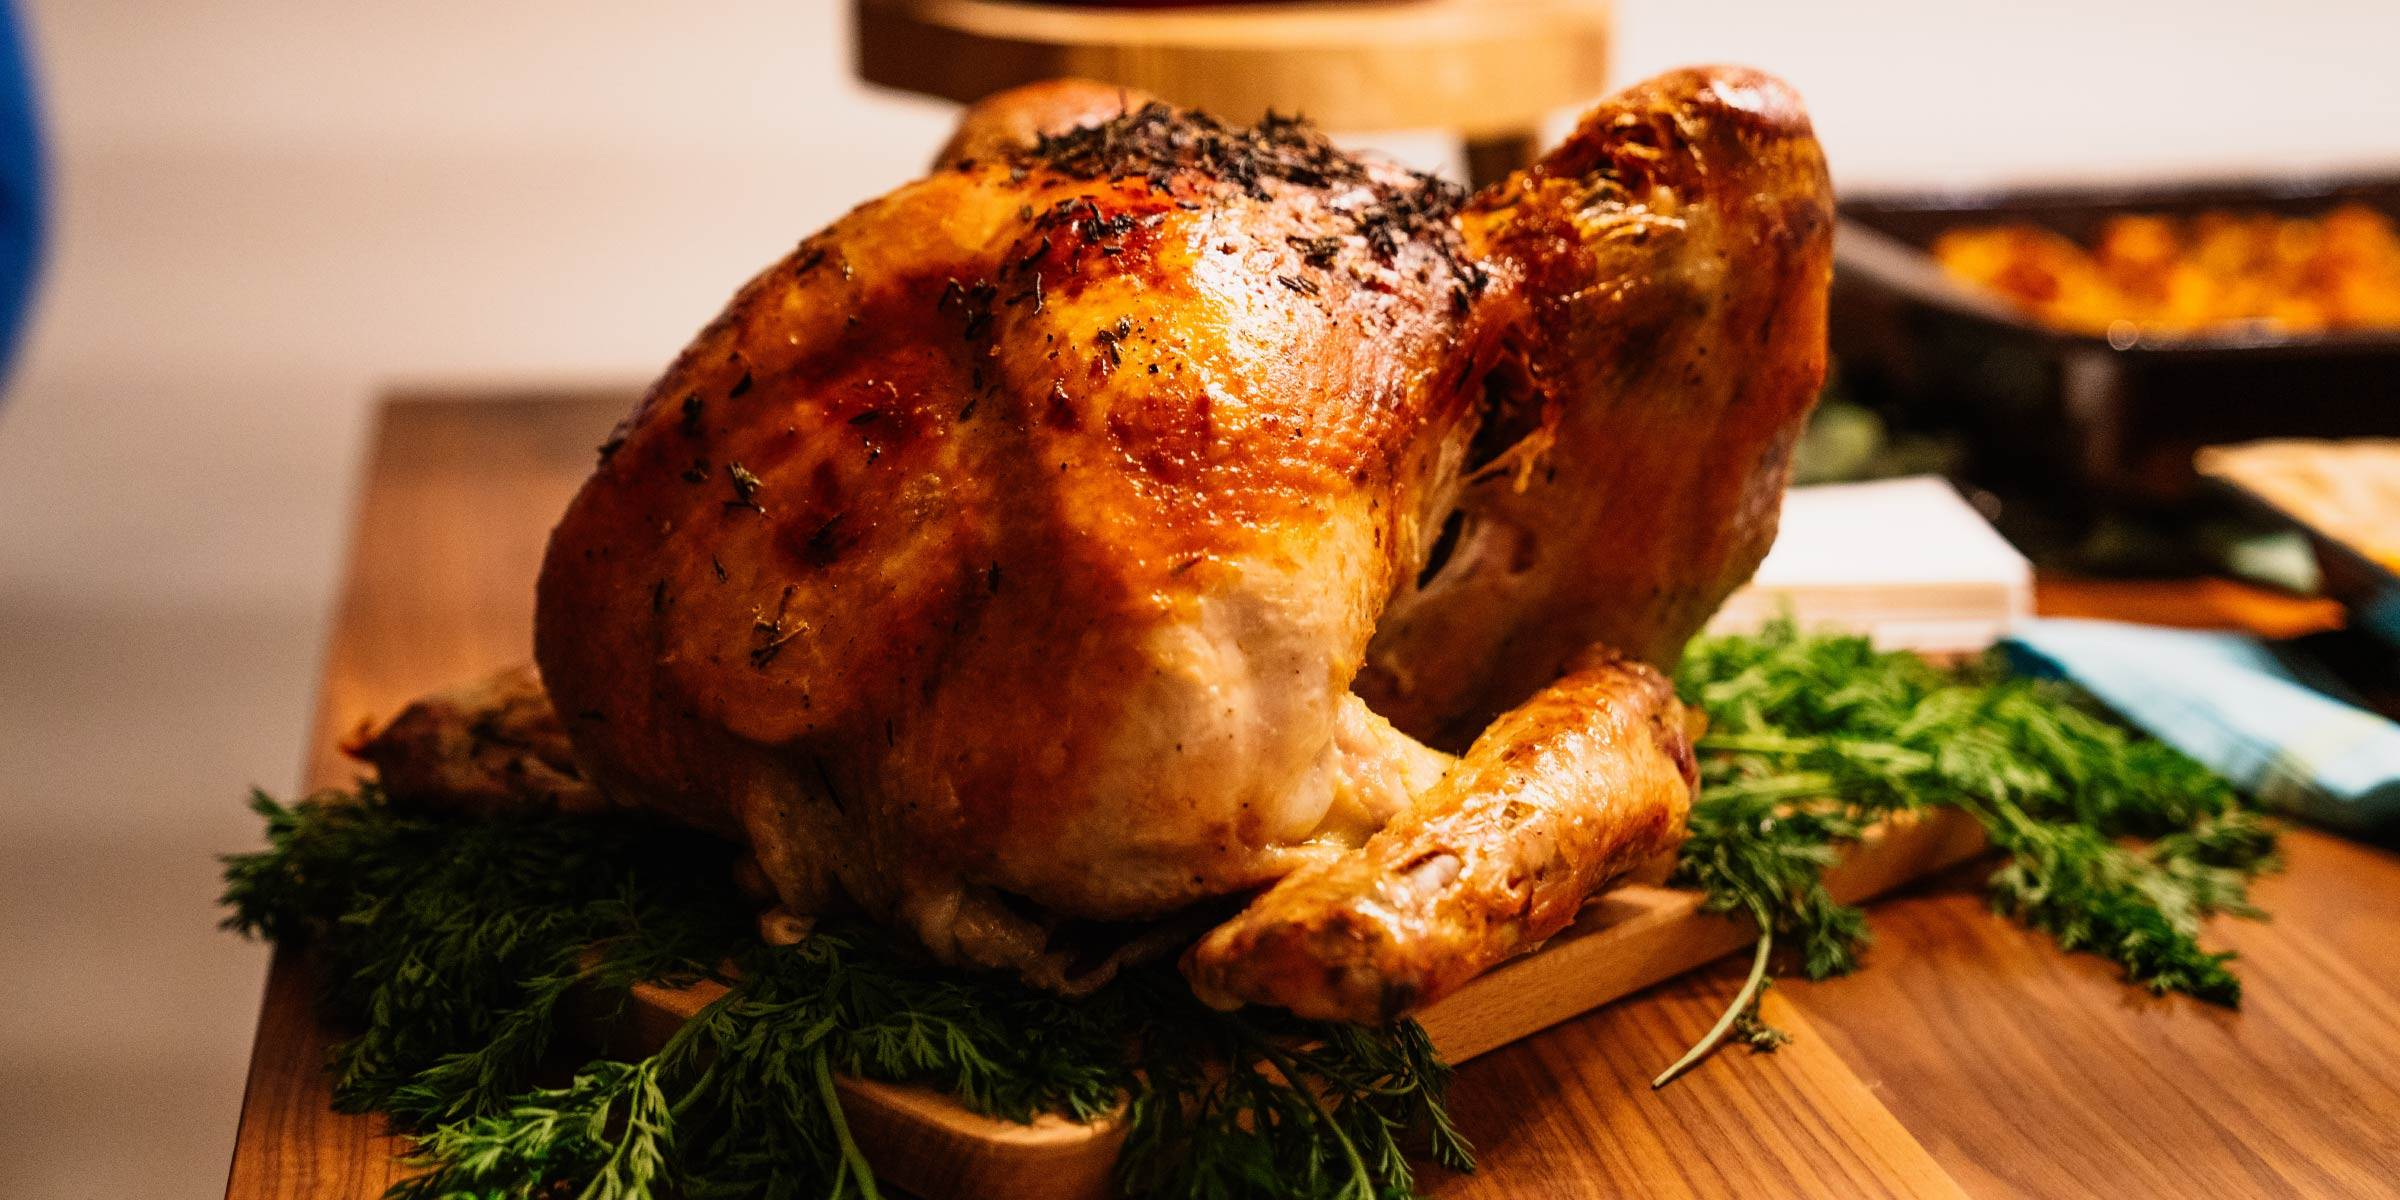 The perfect pairing of roast chicken and Kiss of Wine Crisp Sauvignon Blanc and Smooth Chardonnay.